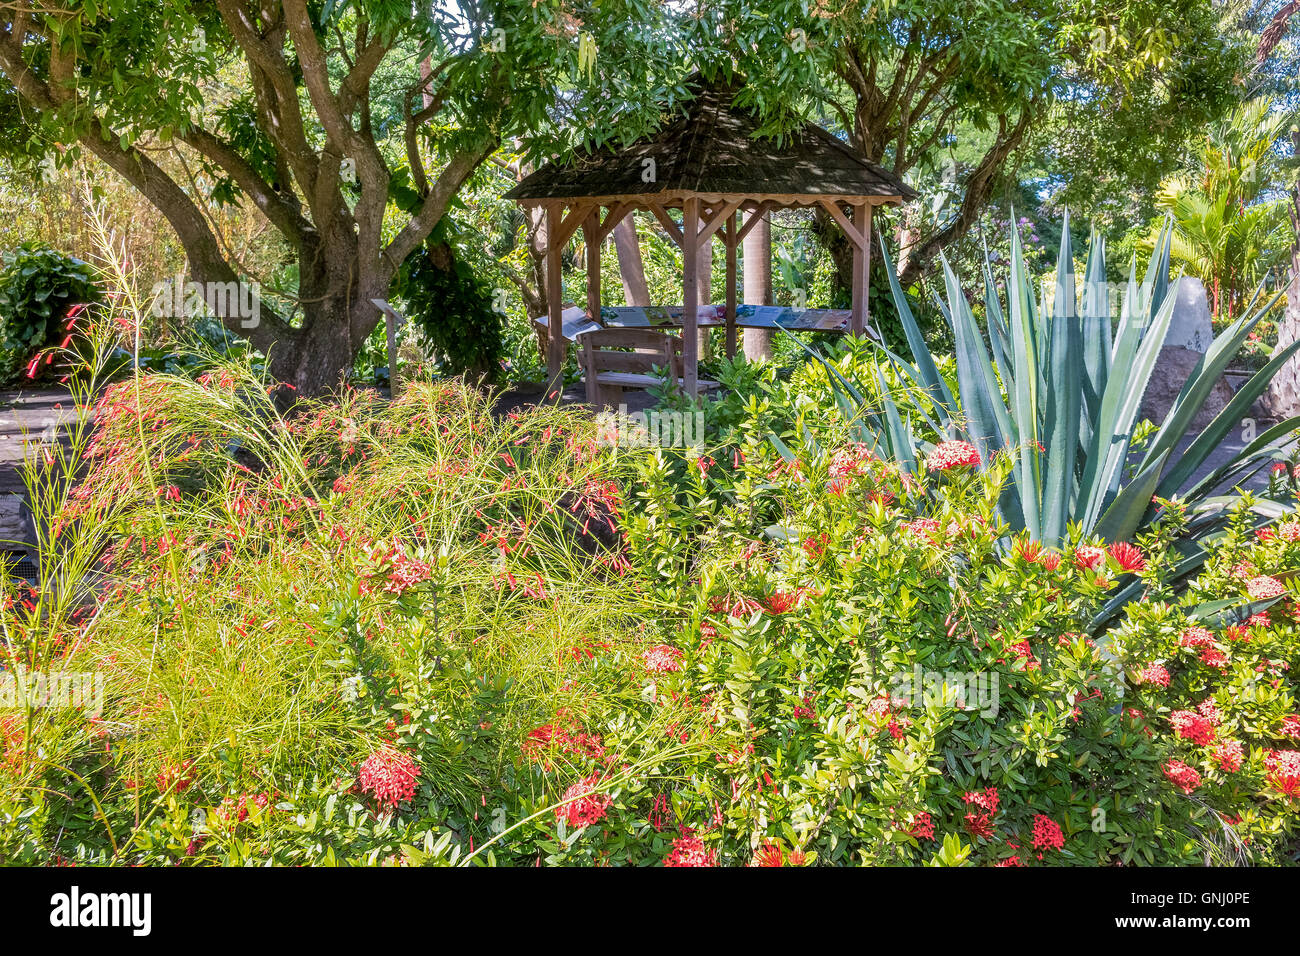 Summer House In the Garden Balata Botanical Gardens Guadeloupe West Indies - Stock Image